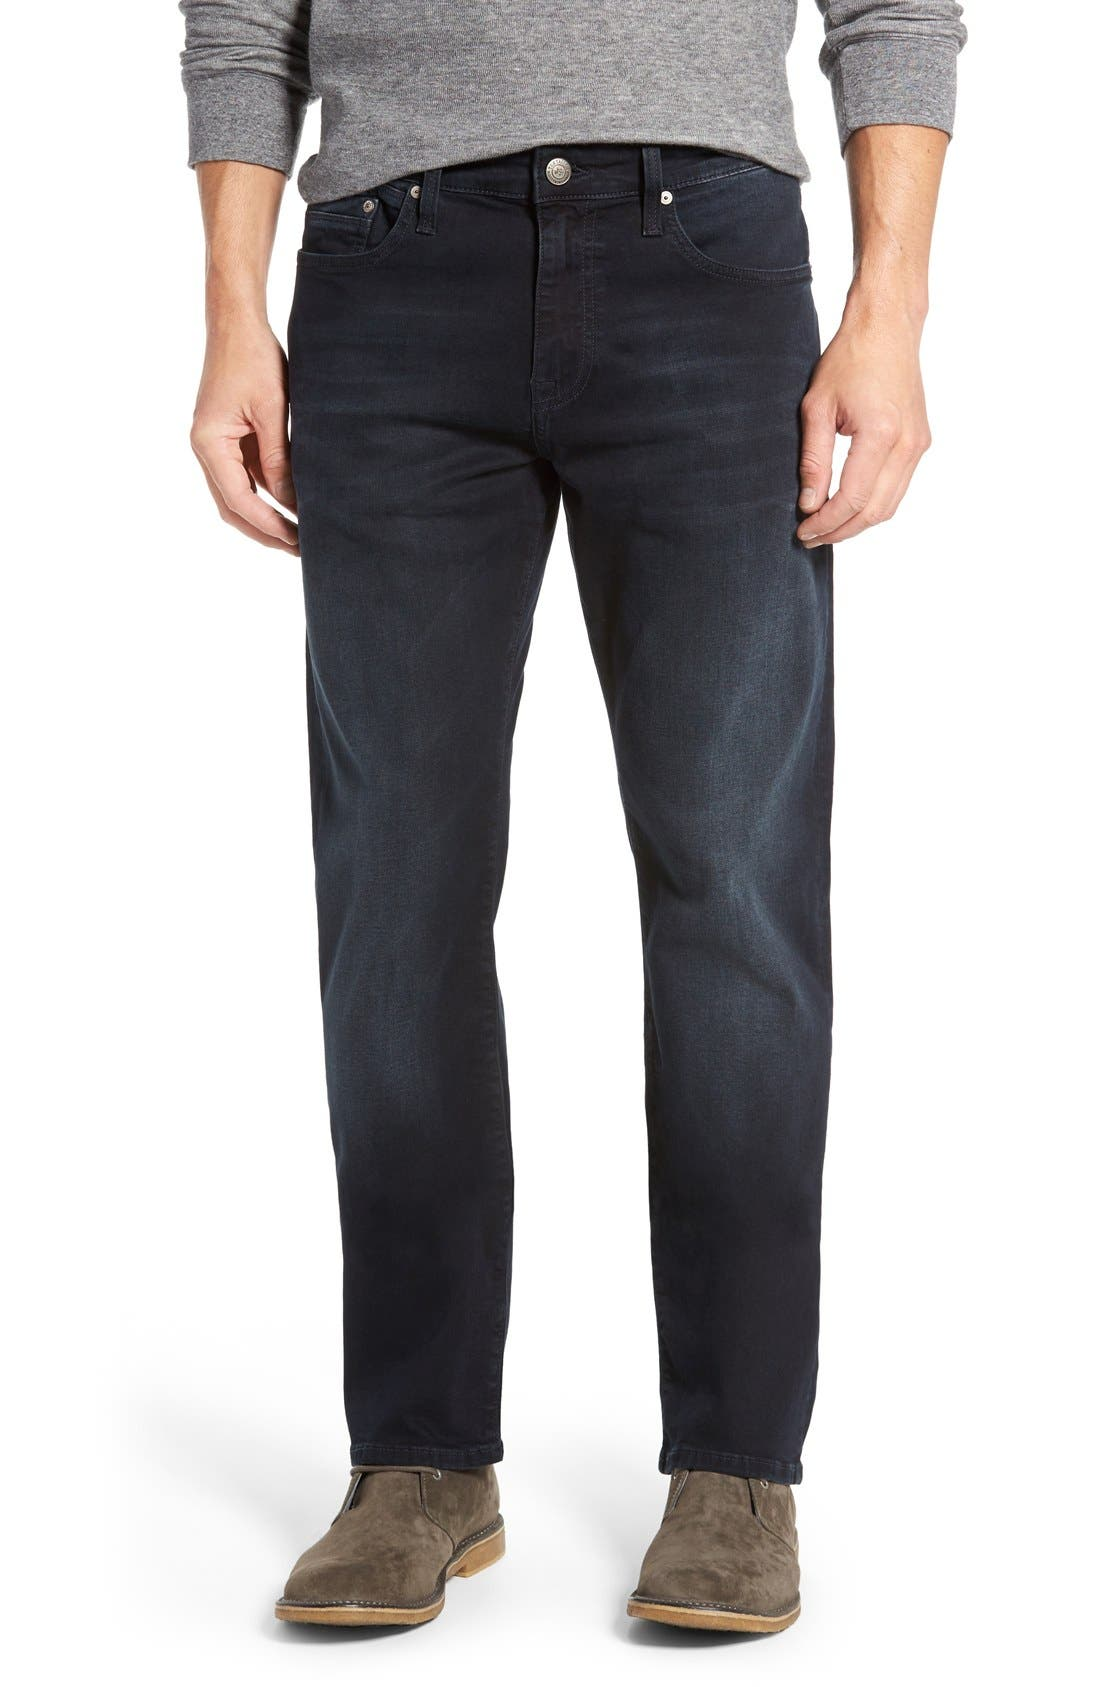 'Myles' Straight Leg Jeans,                         Main,                         color, Ink Brushed Williamsburg